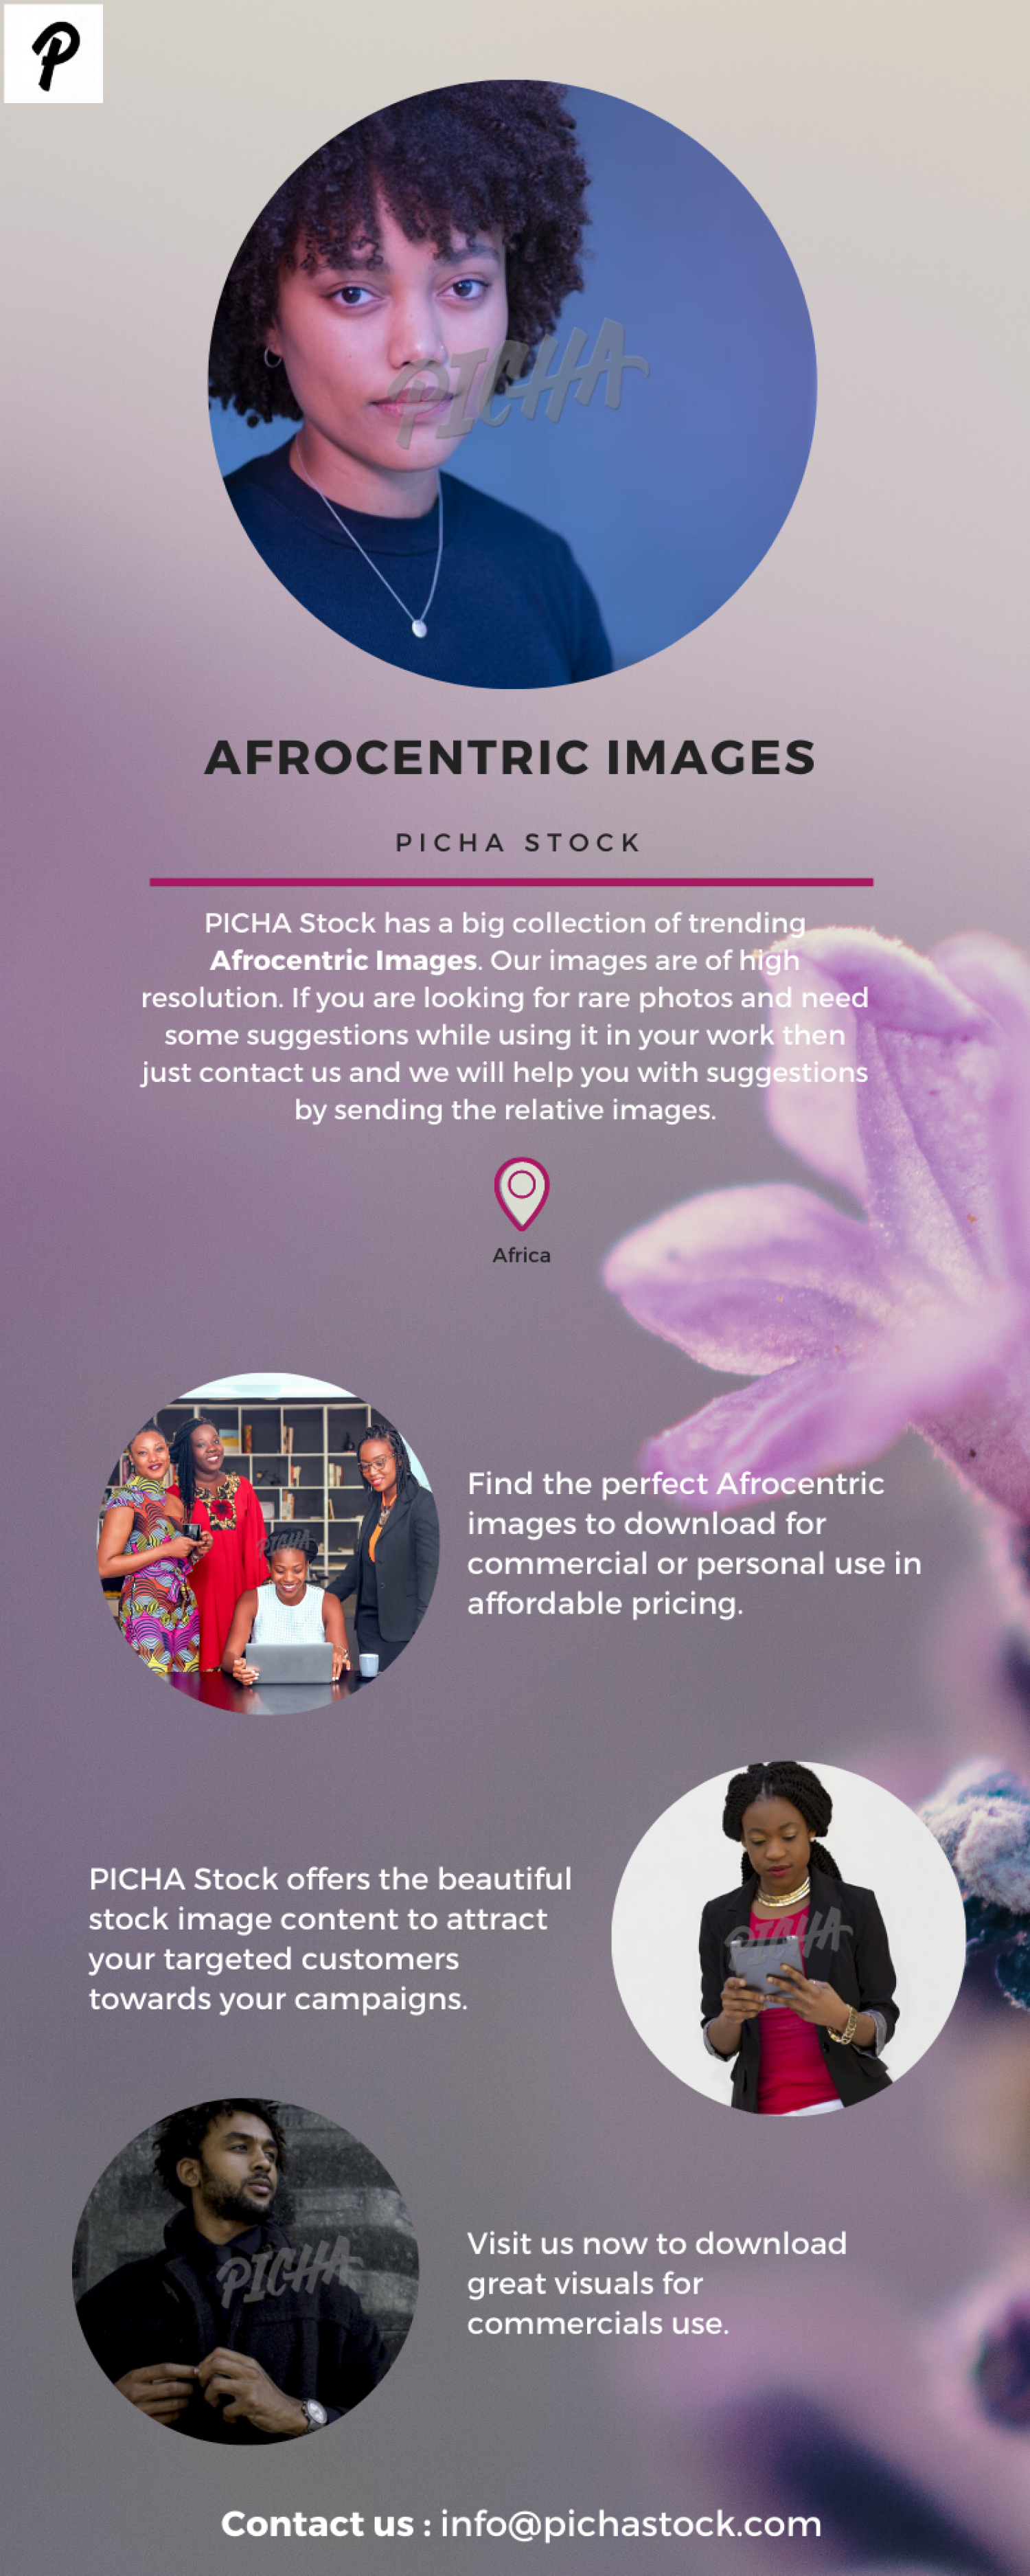 Afrocentric Images | PICHA Stock Infographic